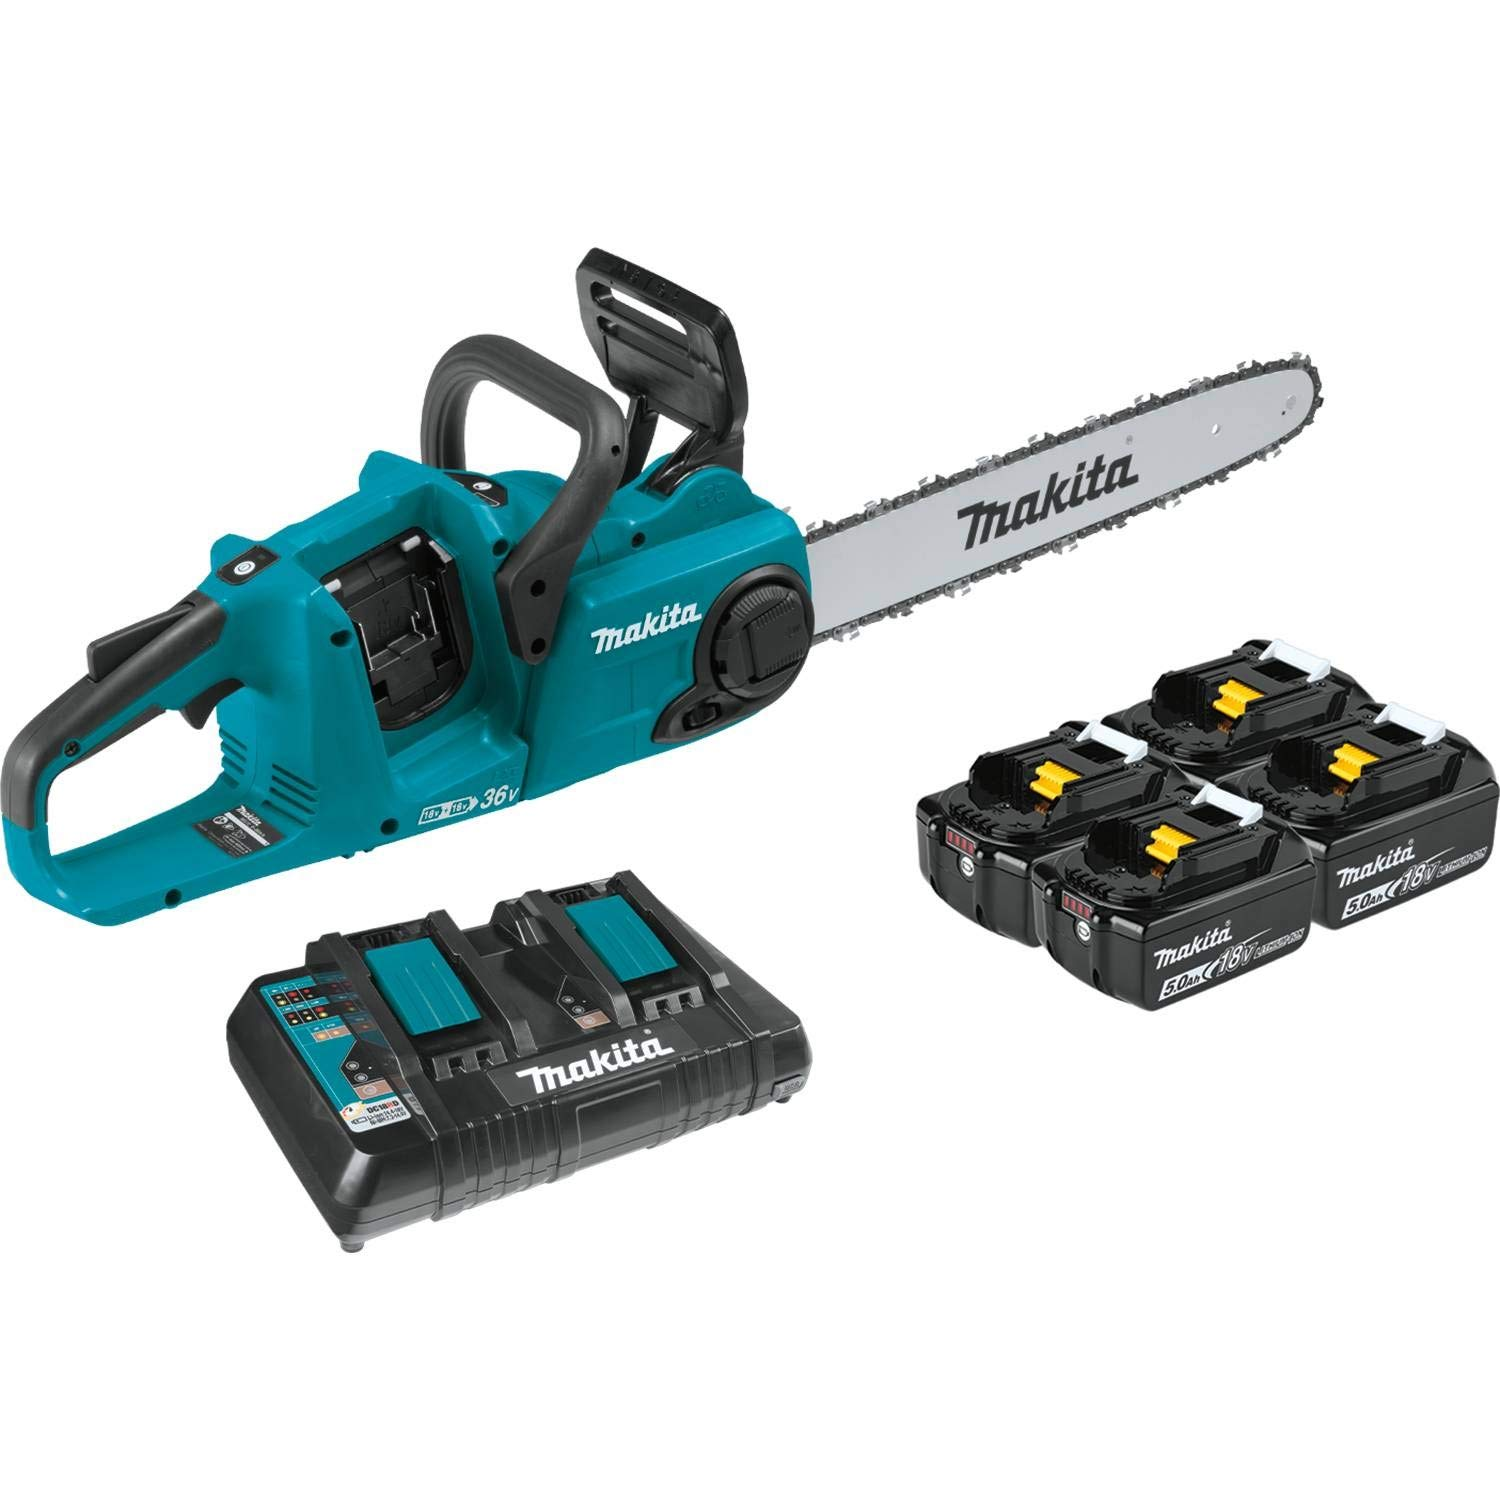 """Makita XCU04PT1 (36V) LXT Lithium-Ion Brushless Cordless (5.0Ah) 18V X2 16"""" Chain Saw Kit with 4 Batteries, Teal"""